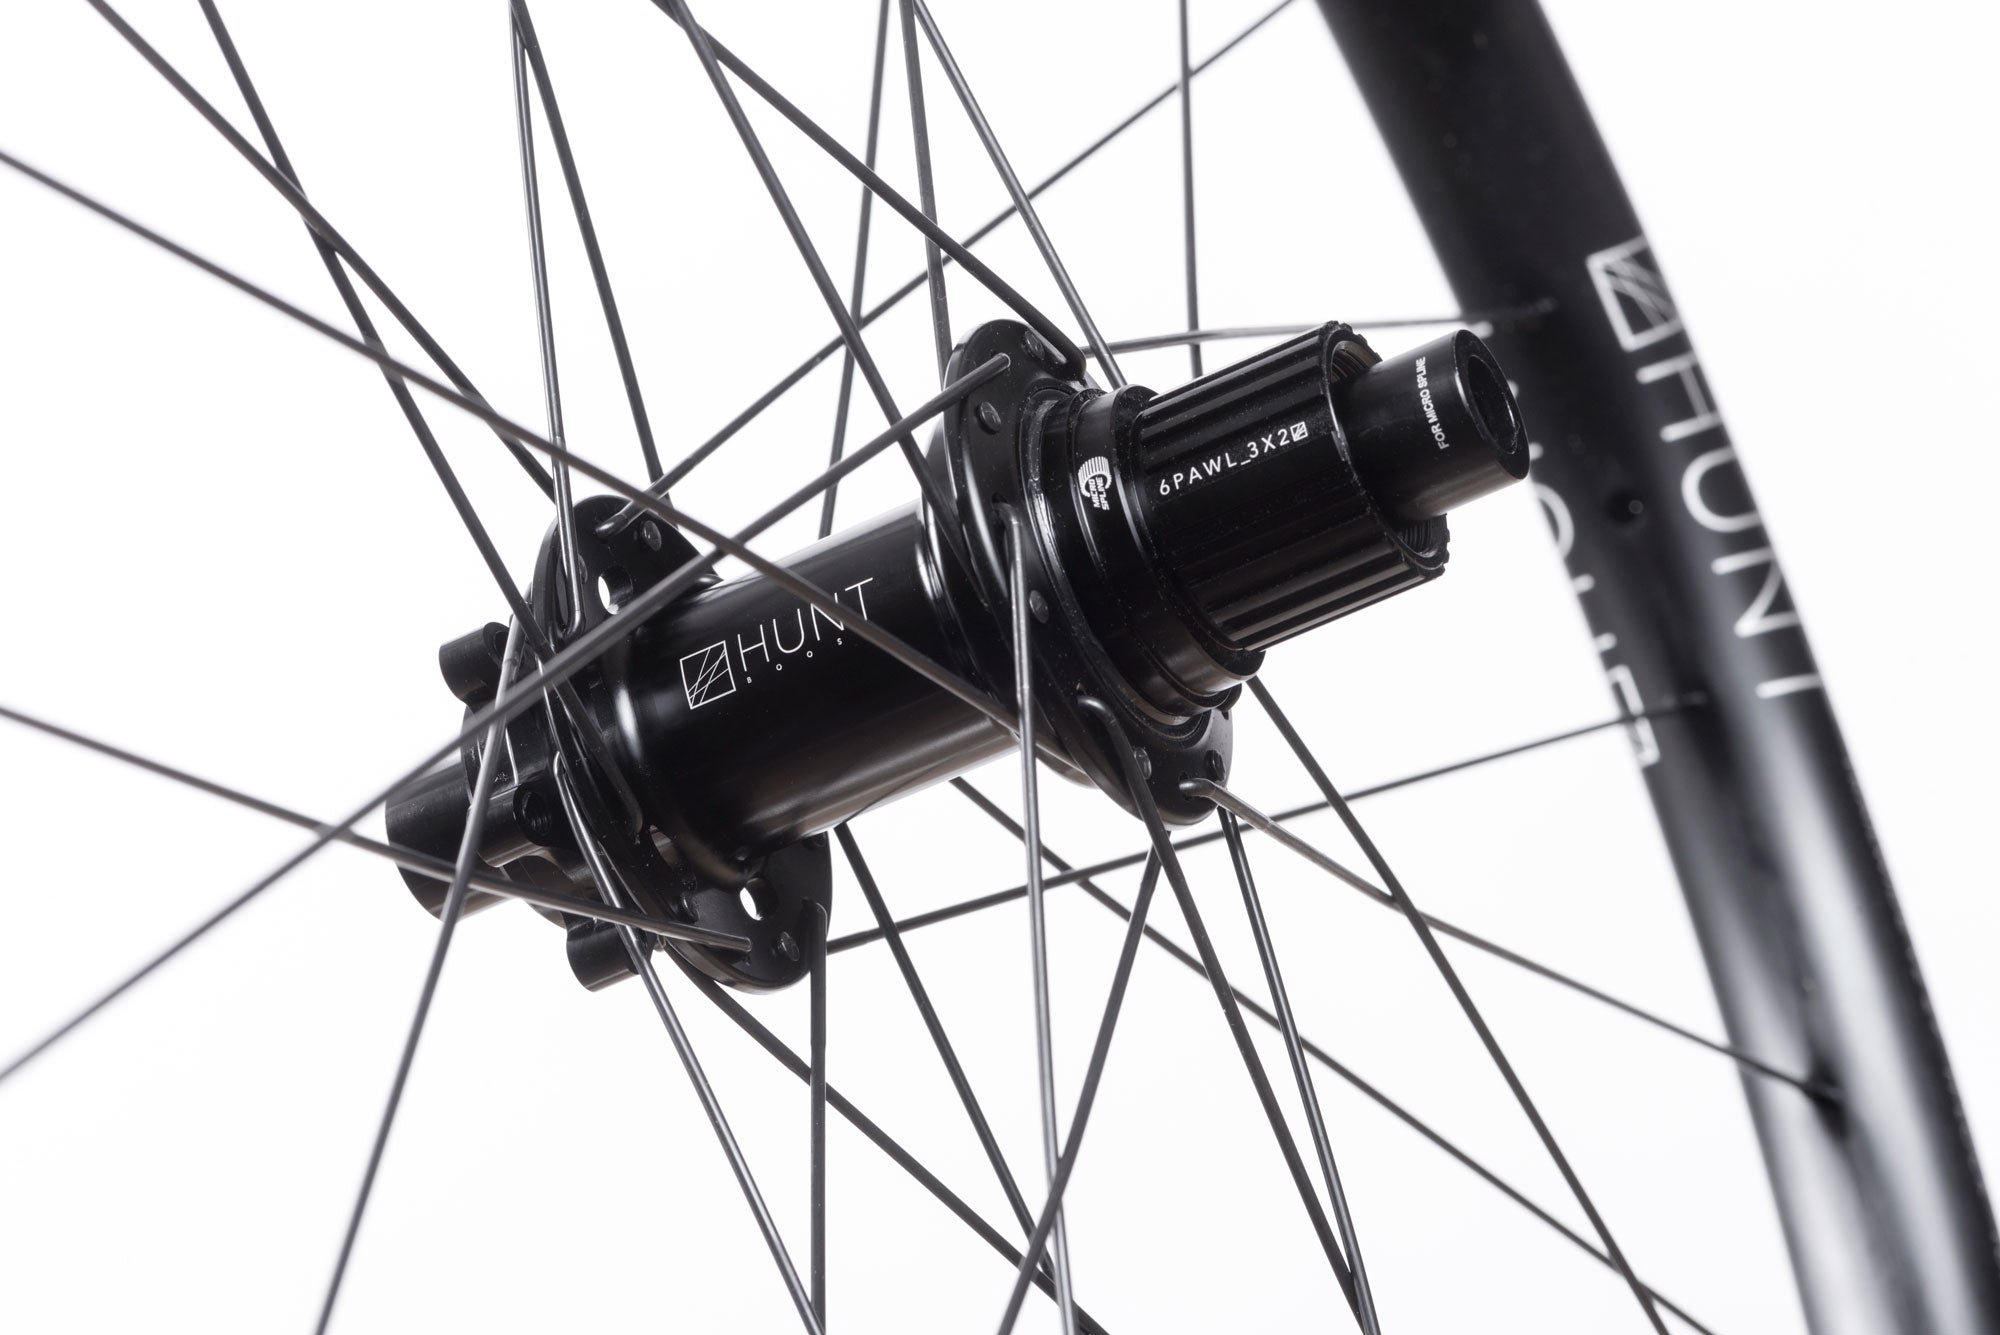 <h1>Rear Hub</h1><i>We create wheels to match the needs of riders who want the most from their wheels. The Trail Wide hubs have been chosen to increase stiffness, bearing durability and overall strength of your wheelset. On the rear, the RapidEngage MTB hubs with a fast 5 degree engagement, means you will be able to clear those janky tech climbs with ease.</i>